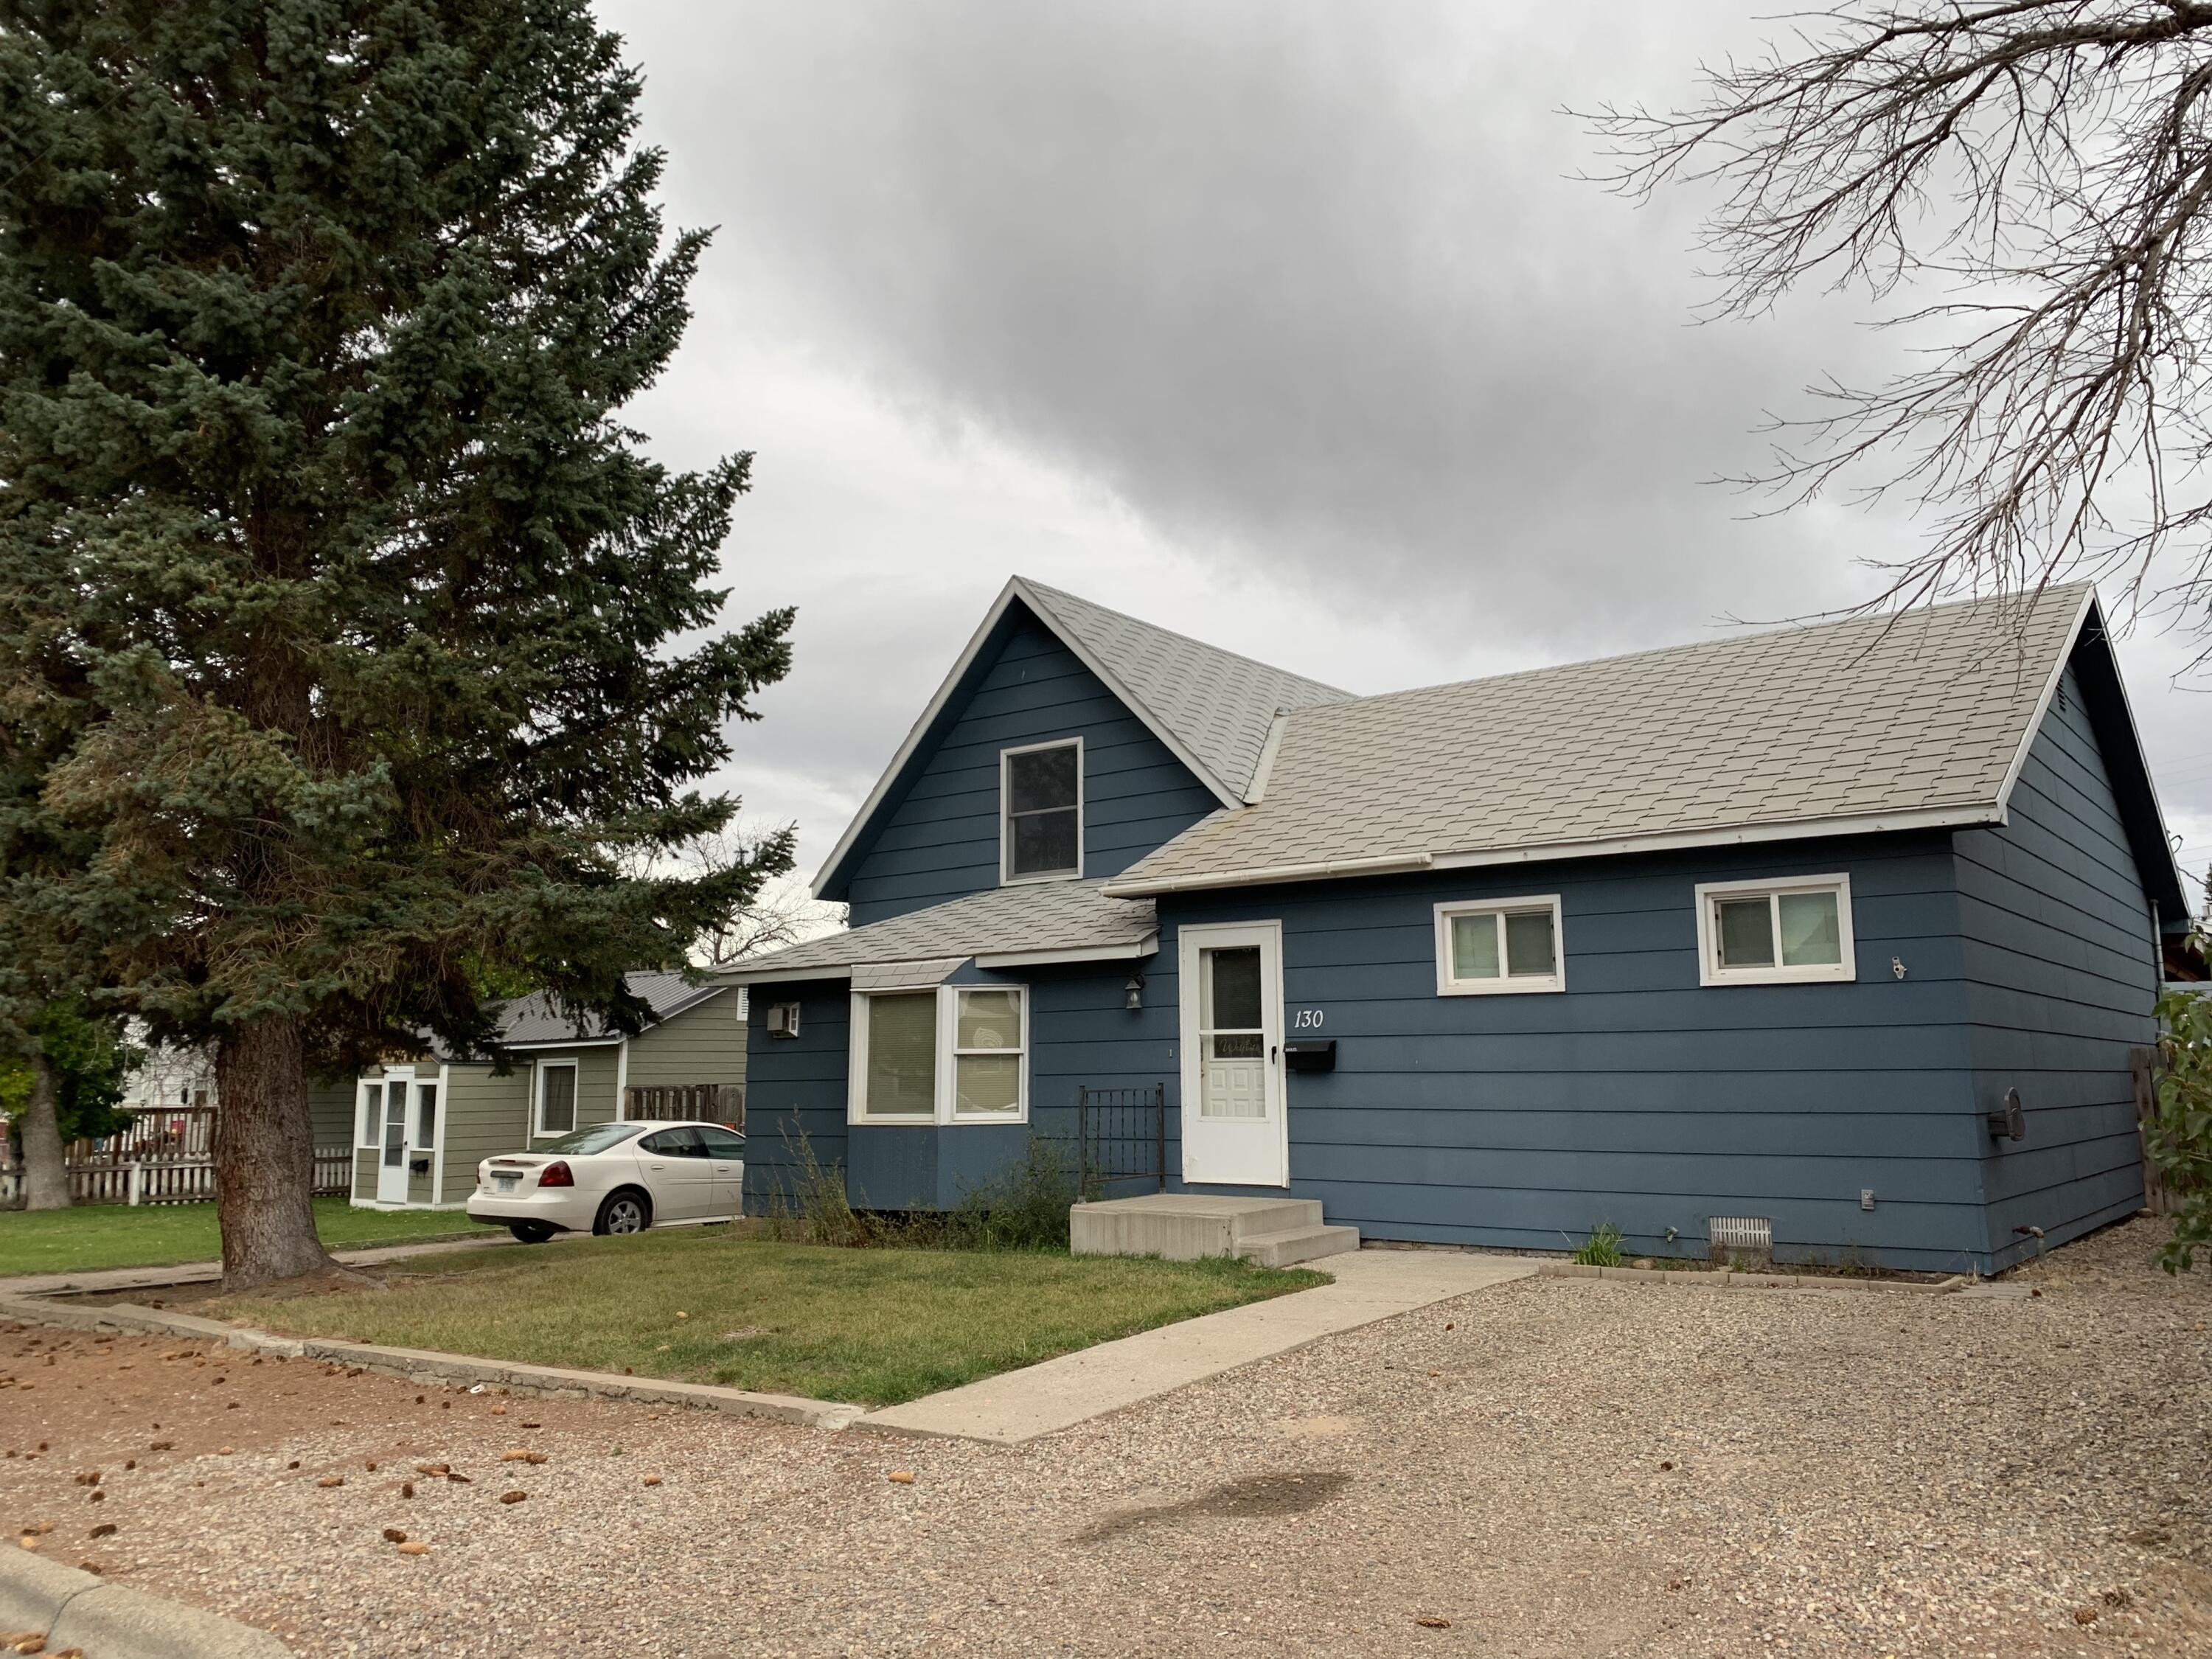 Hard to find oversized 2 car garage (1020 sqft) insulated with gas furnace & wood stove.  Large back patio and private back yard with out door fire pit. Main level has  updated kitchen with lots of storage, large dining area, living room with gas stove, master bedroom & bath, additional bath, back entry with main level laundry. Upstairs has 2 additional bedrooms and a half bath. Basement is mostly storage. Call Jessica Hedges at 406-845-3156, or your real estate professional.